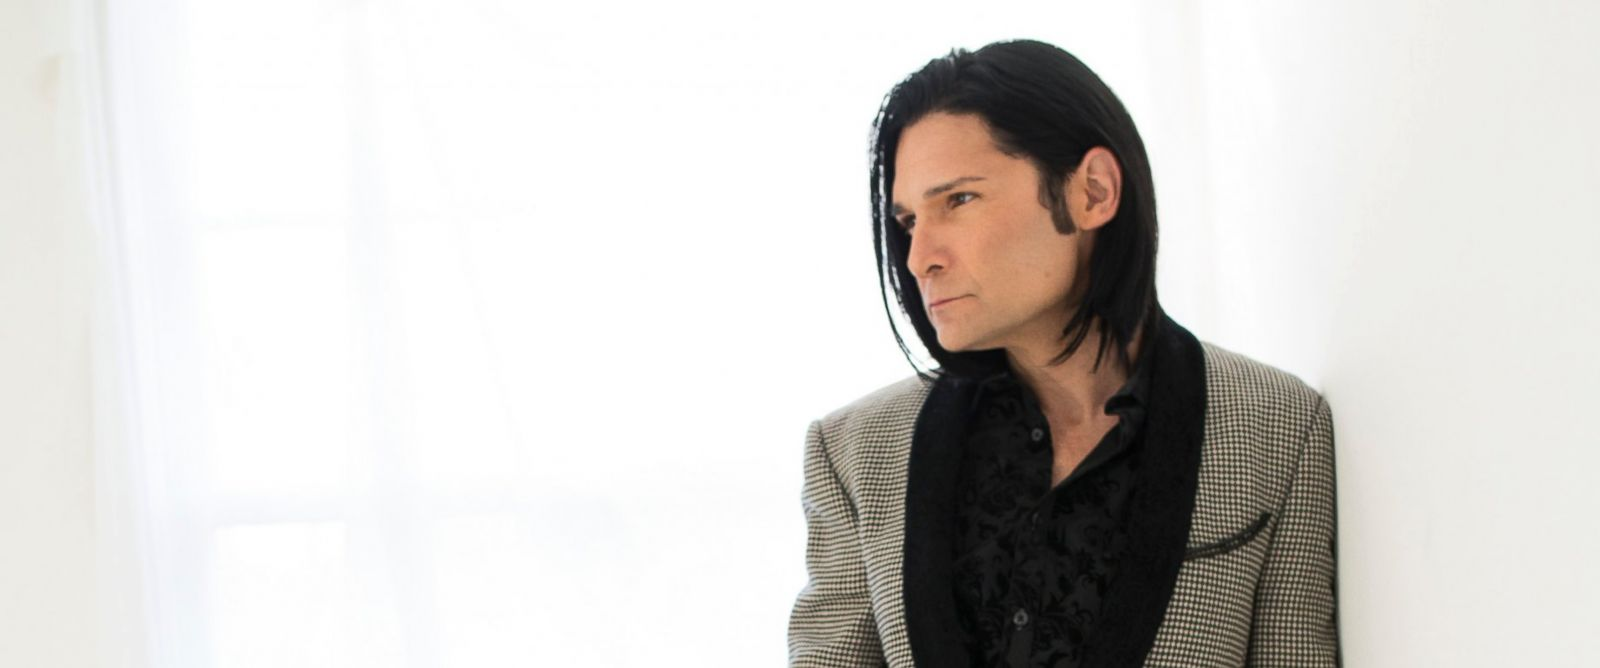 corey feldman - photo #14